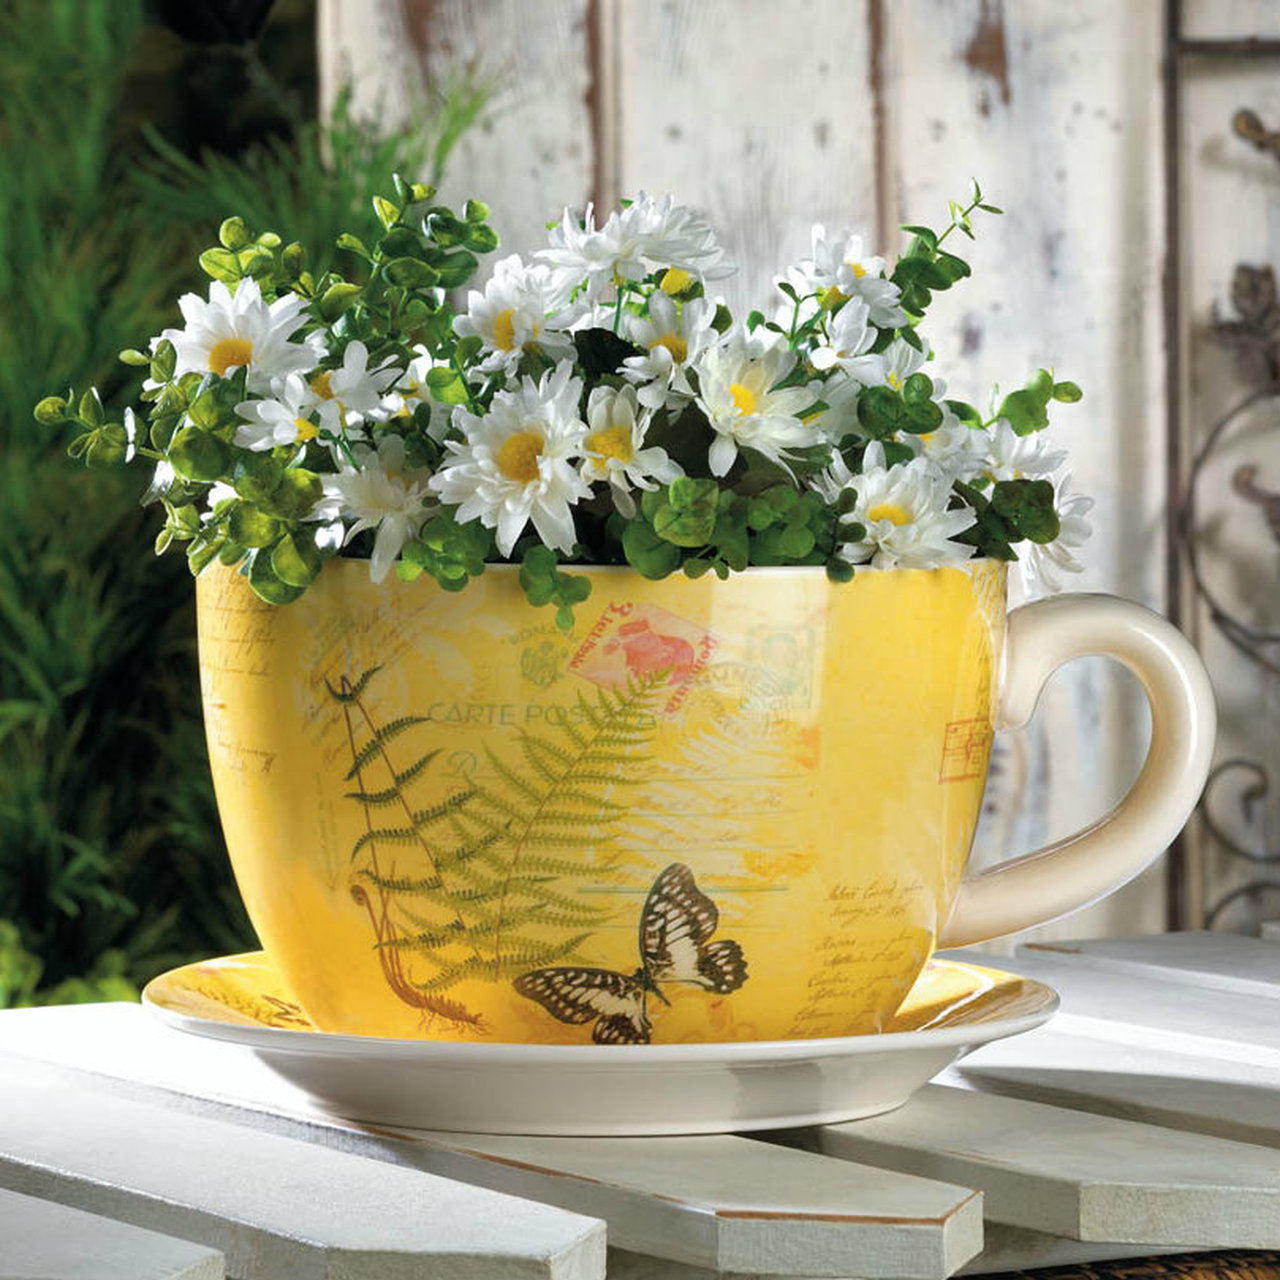 Butterfly Dolomite Tea Cup Planter - 6.25 inches